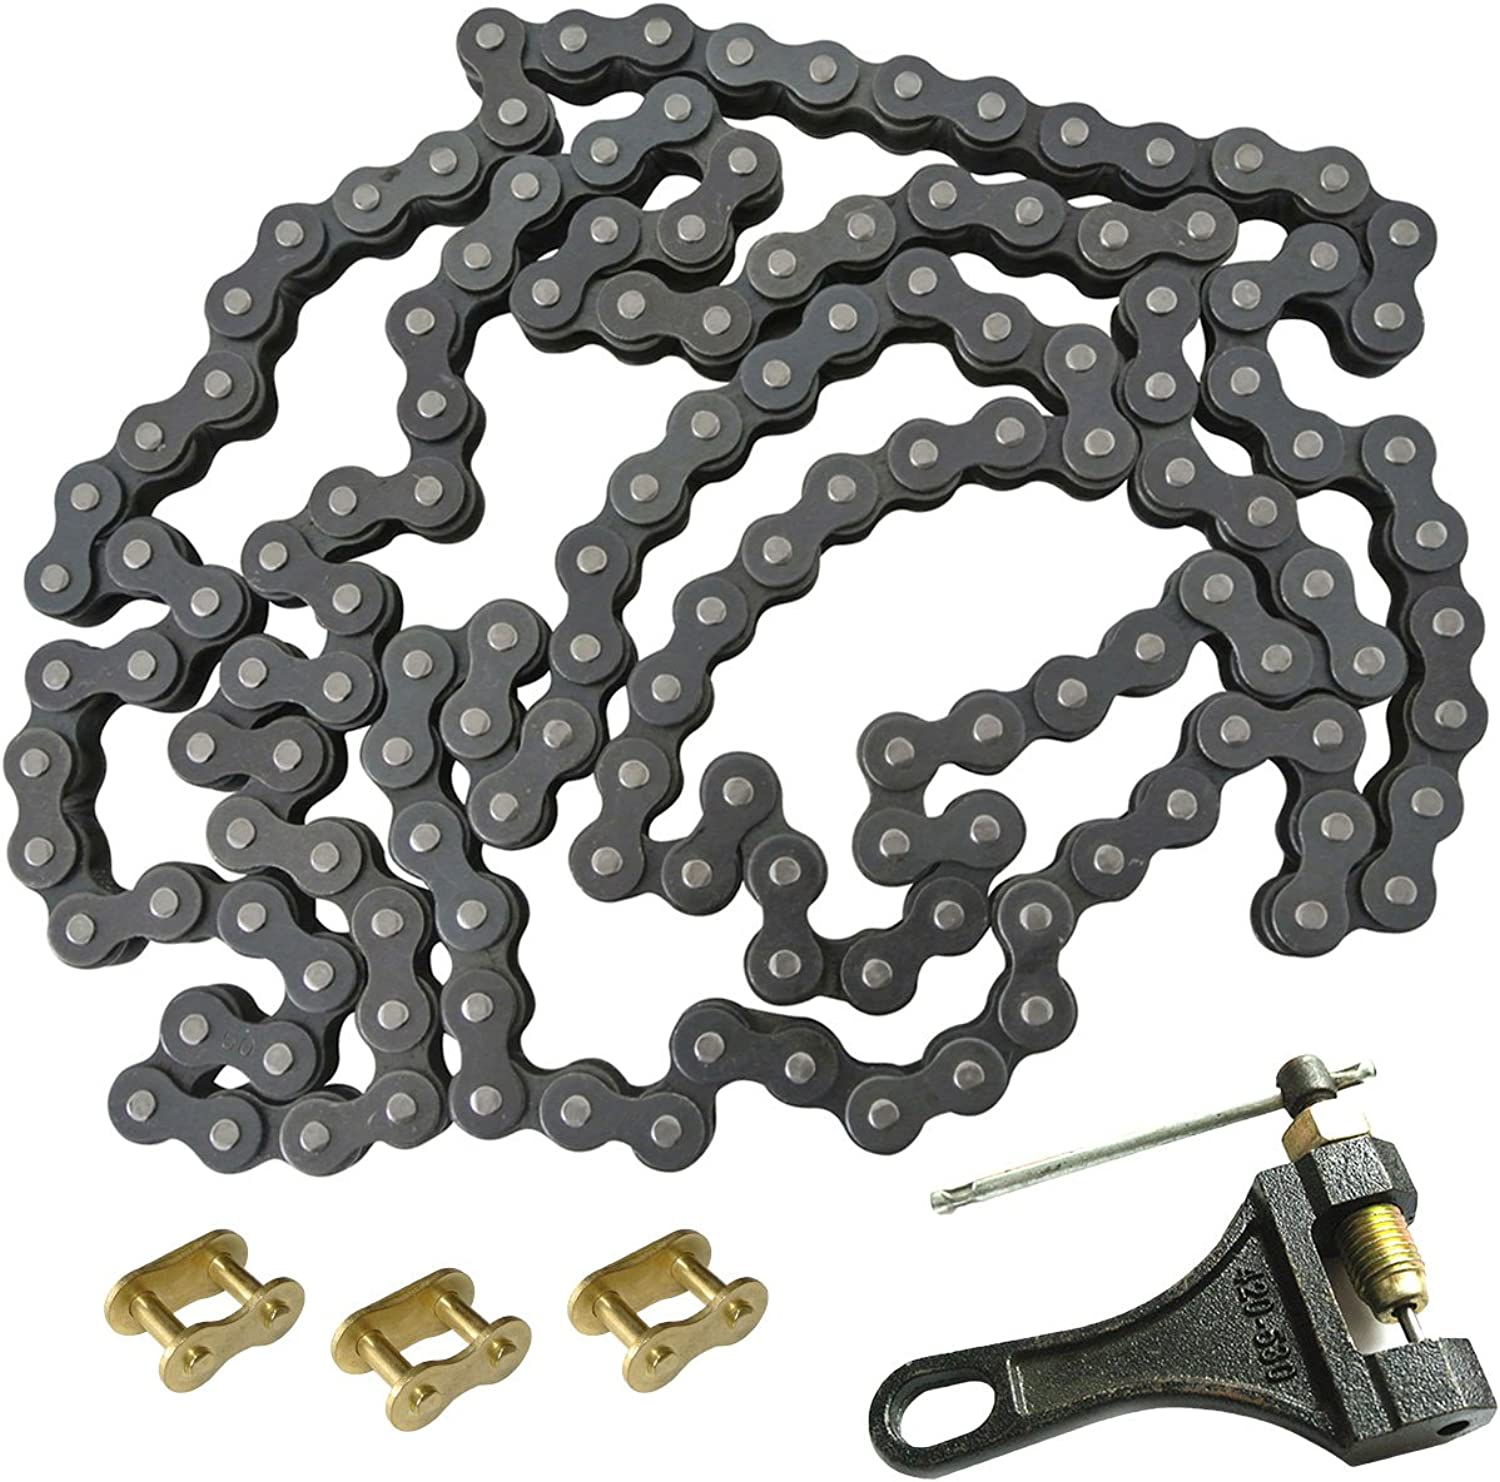 JRL 530 Chain Heavy Duty 140L with 1 Connecting Link & Chain Breaker for Motorcycle